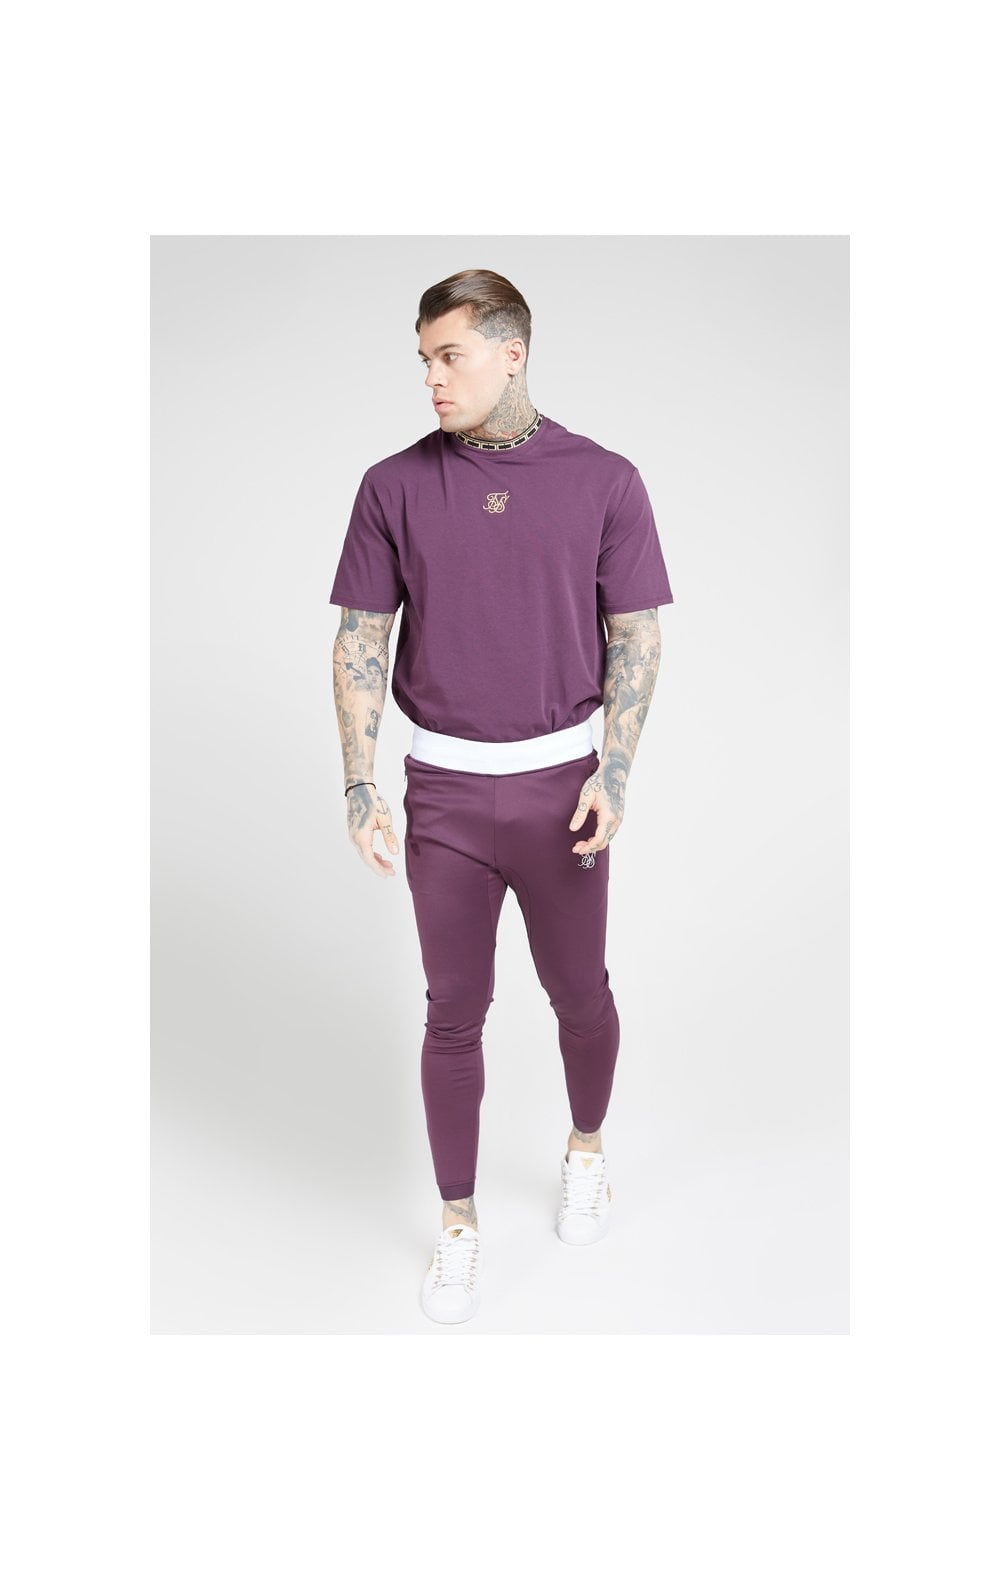 Load image into Gallery viewer, SikSilk Tape Collar Essential Tee - Burgundy & Gold (3)